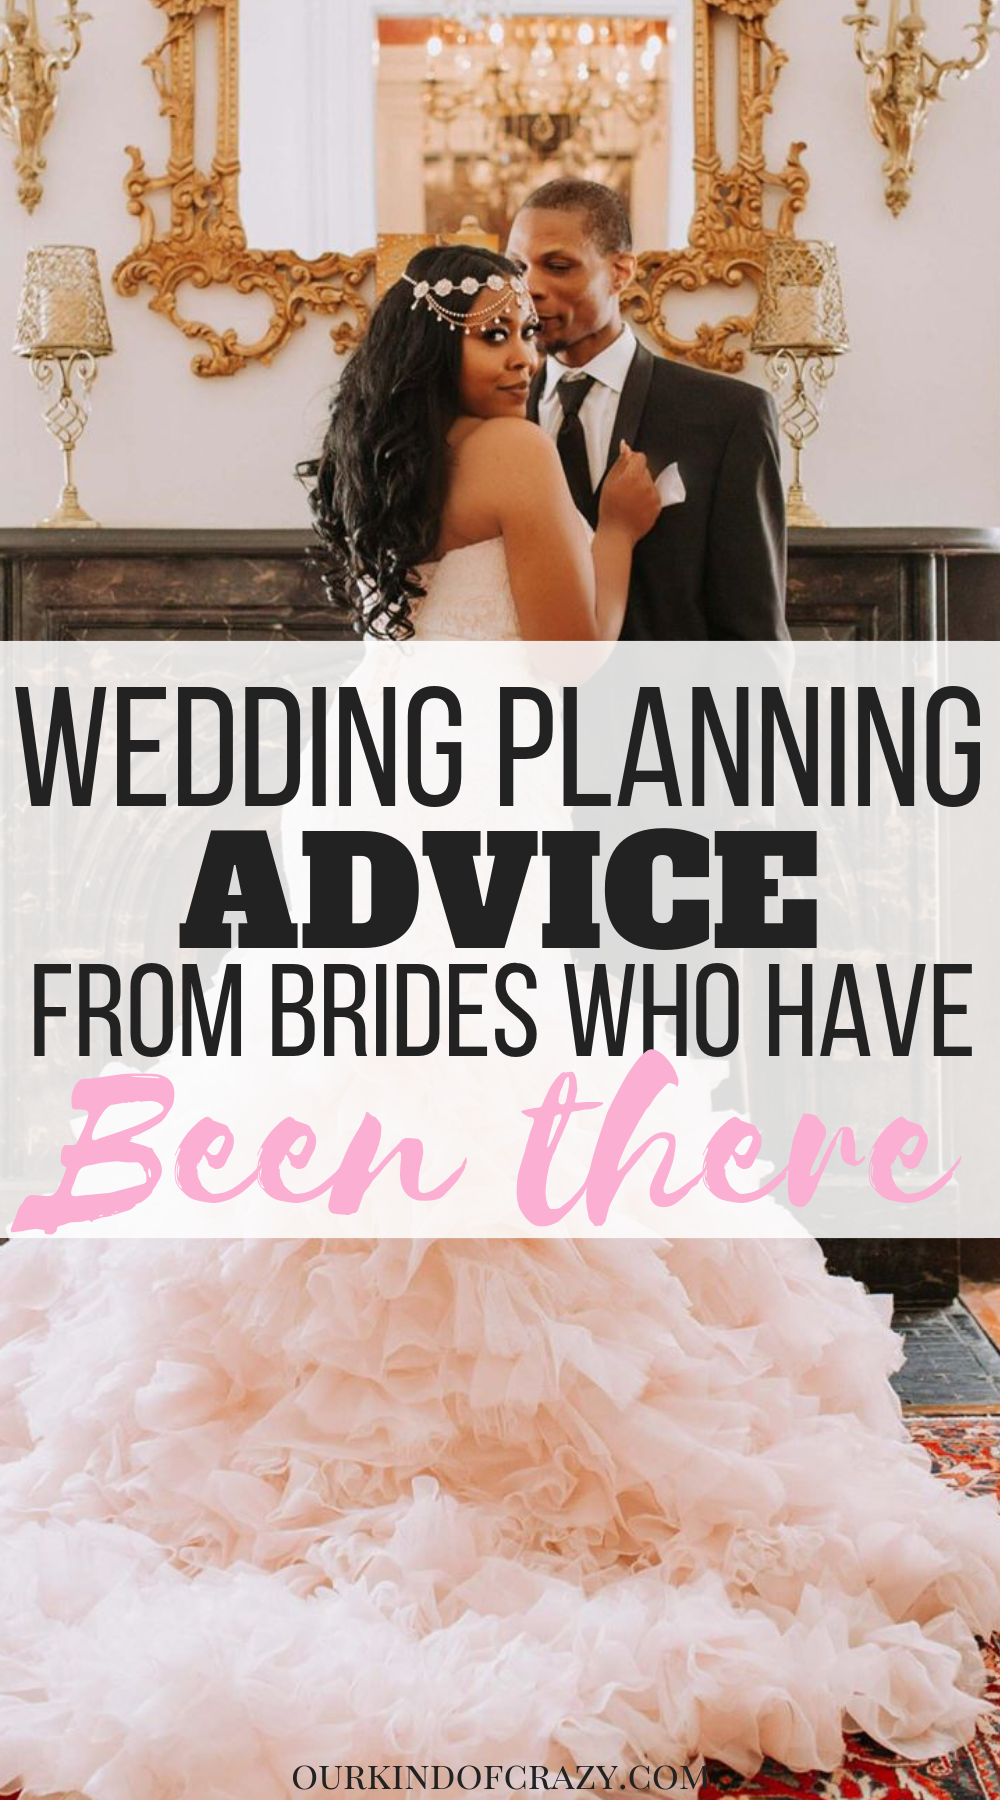 Wedding Planning Advice for Brides. Wedding Advice from Brides who have already planned their wedding! Southern Elegance Wedding